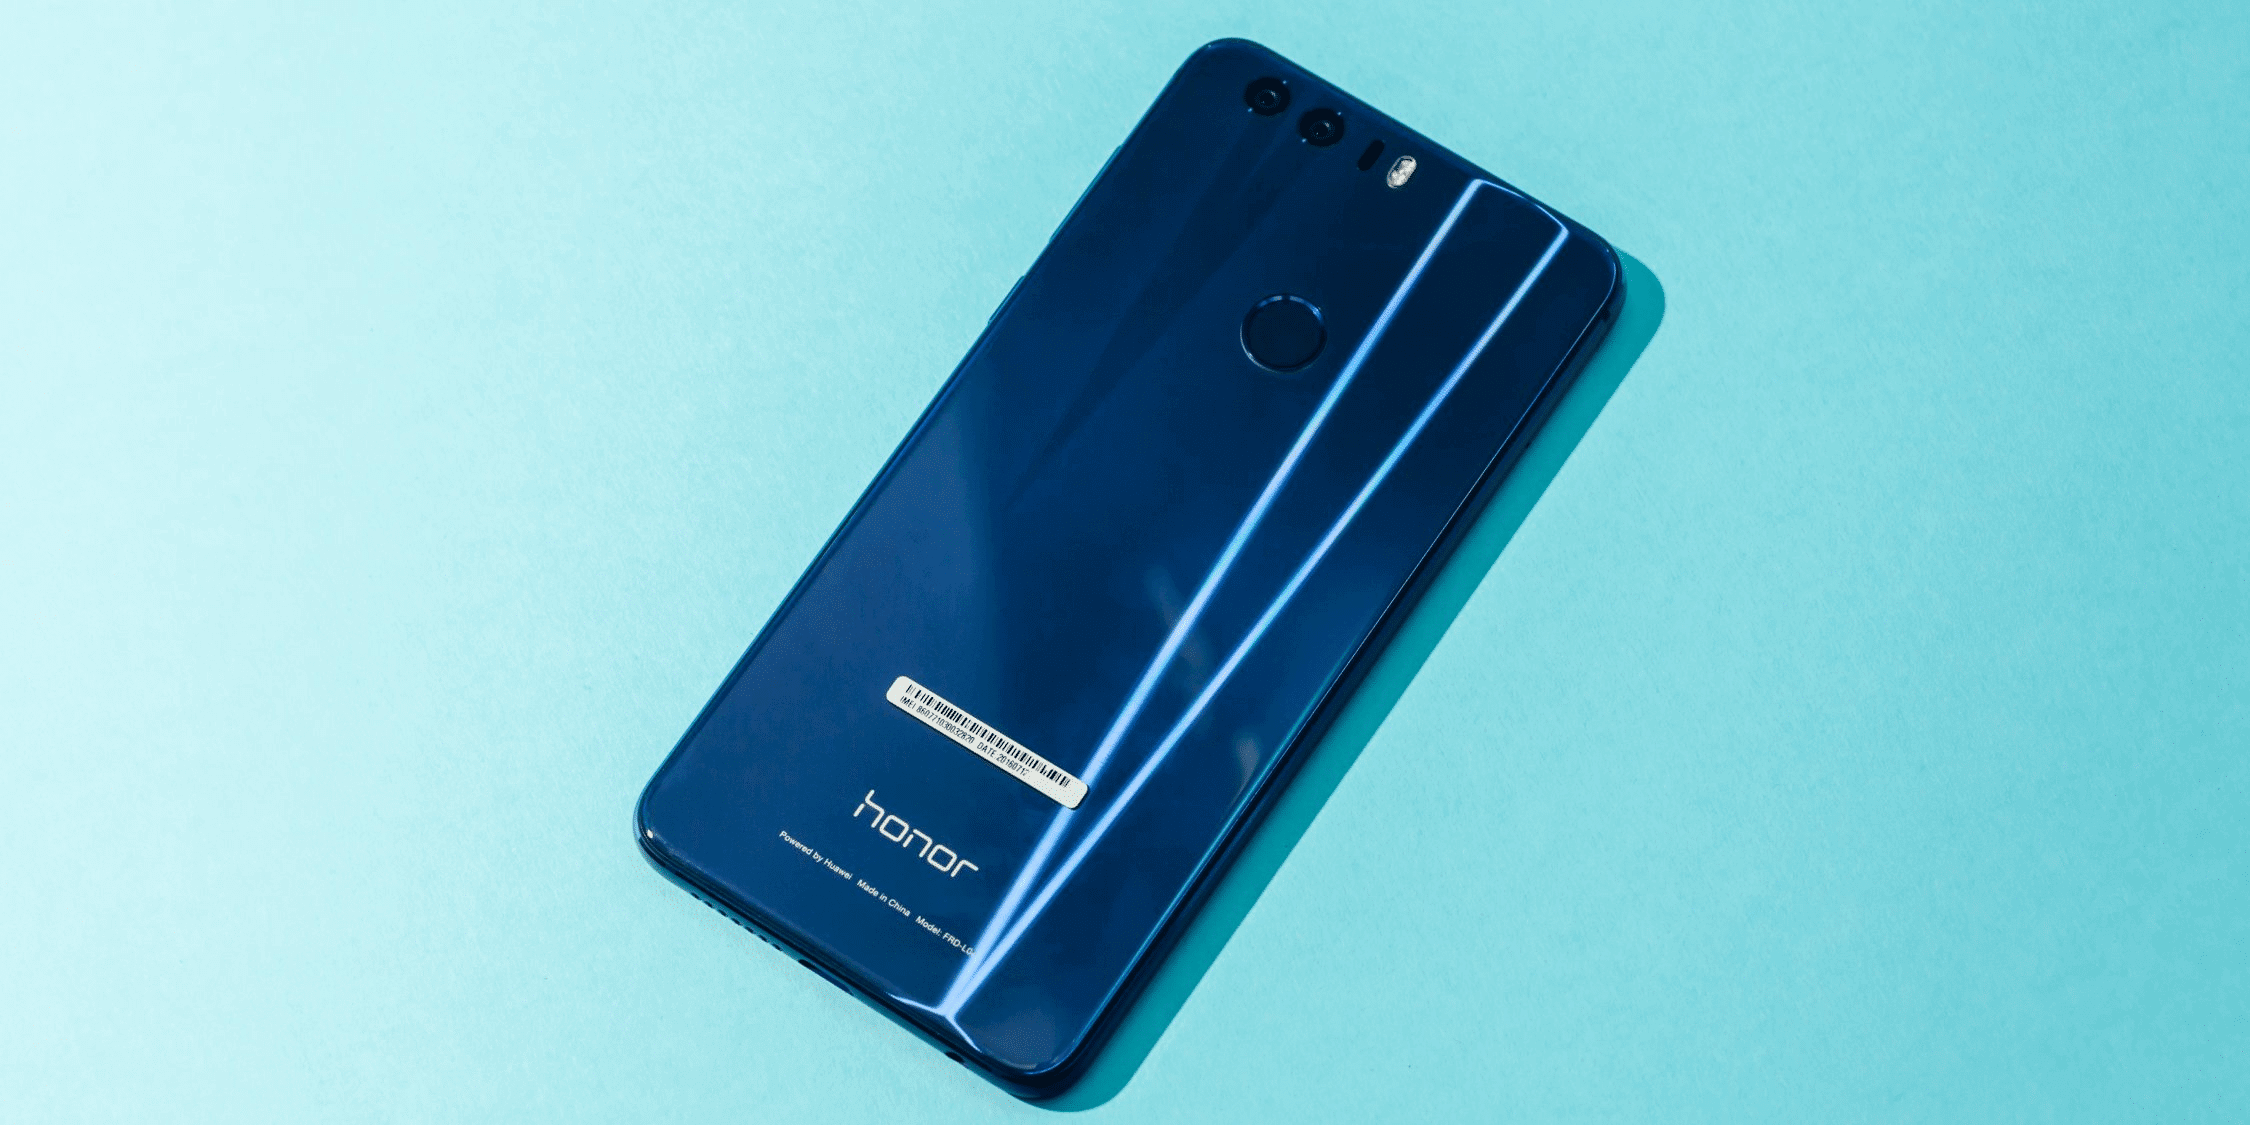 Update Honor 8 Smart To B301 Official Update Android 7.0 Nougat 1